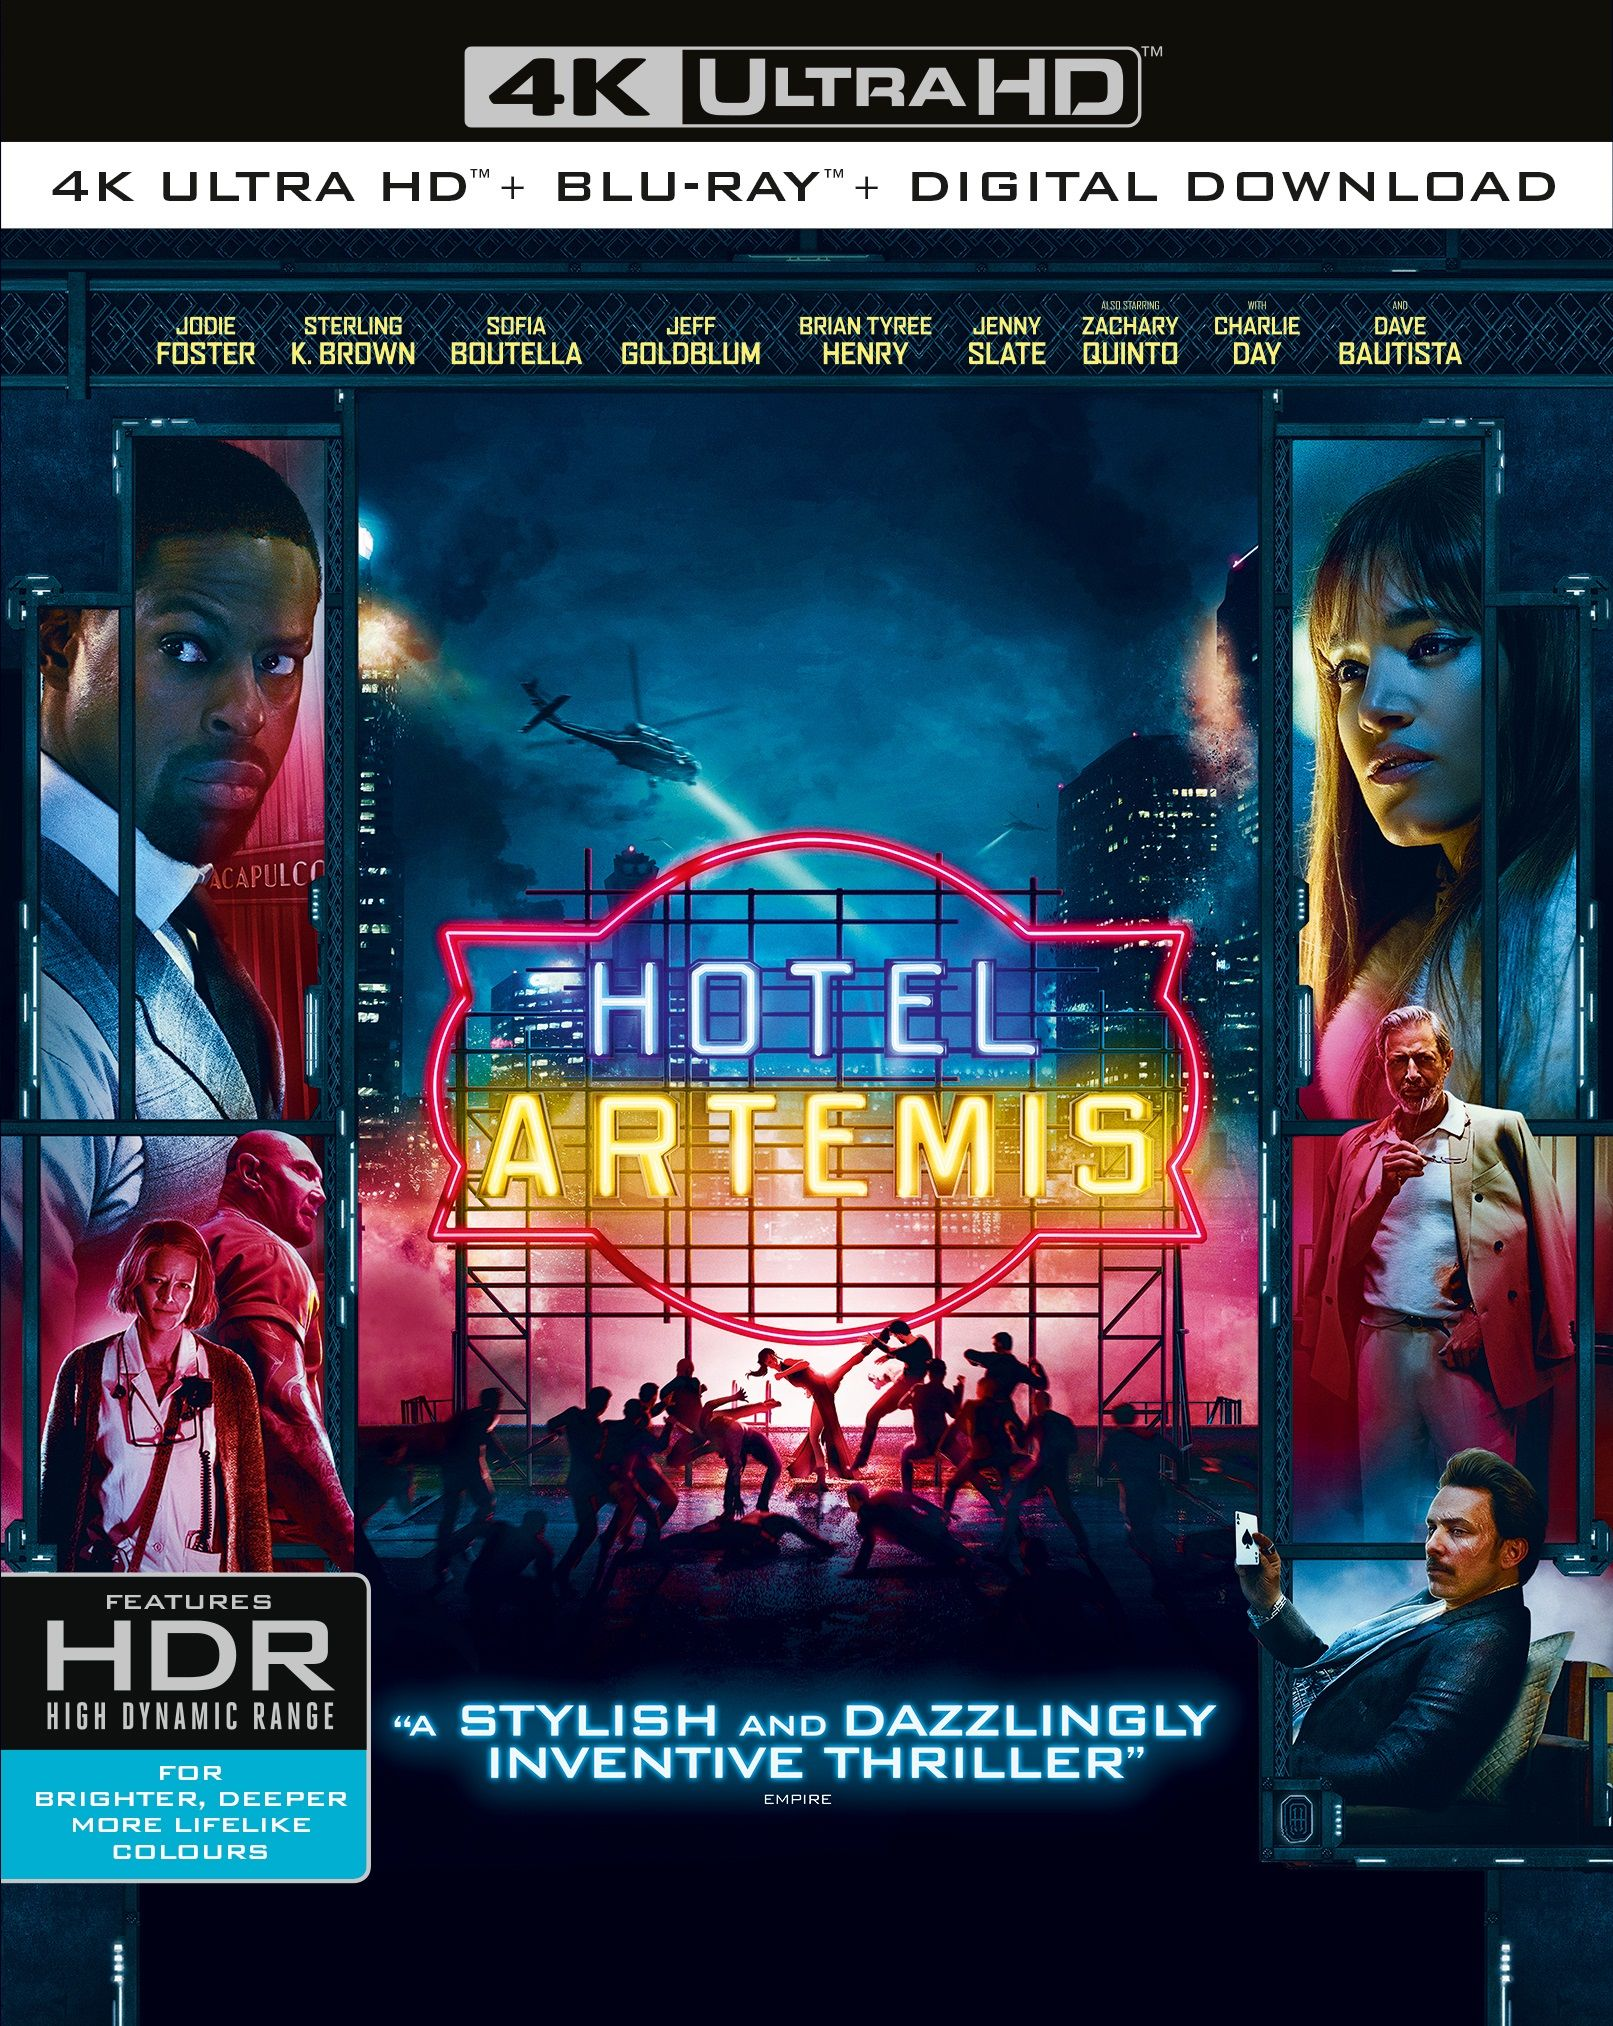 Pin By Ck On 4k Movies Artemis Great Movies Thriller